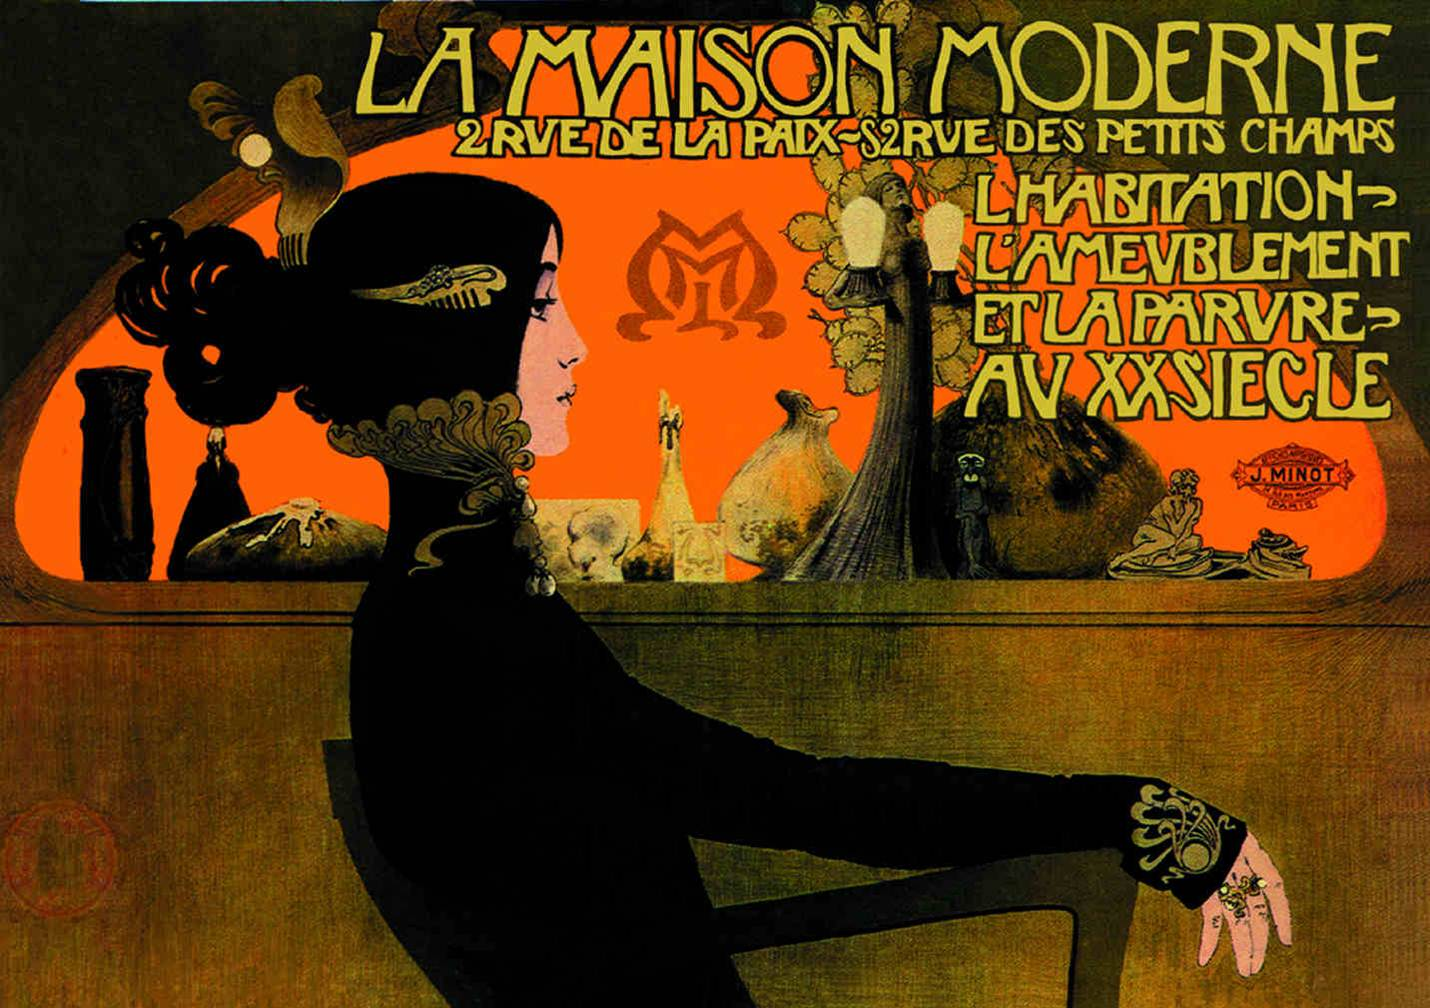 Having a look at history of graphic design art nouveau in for La maison moderne